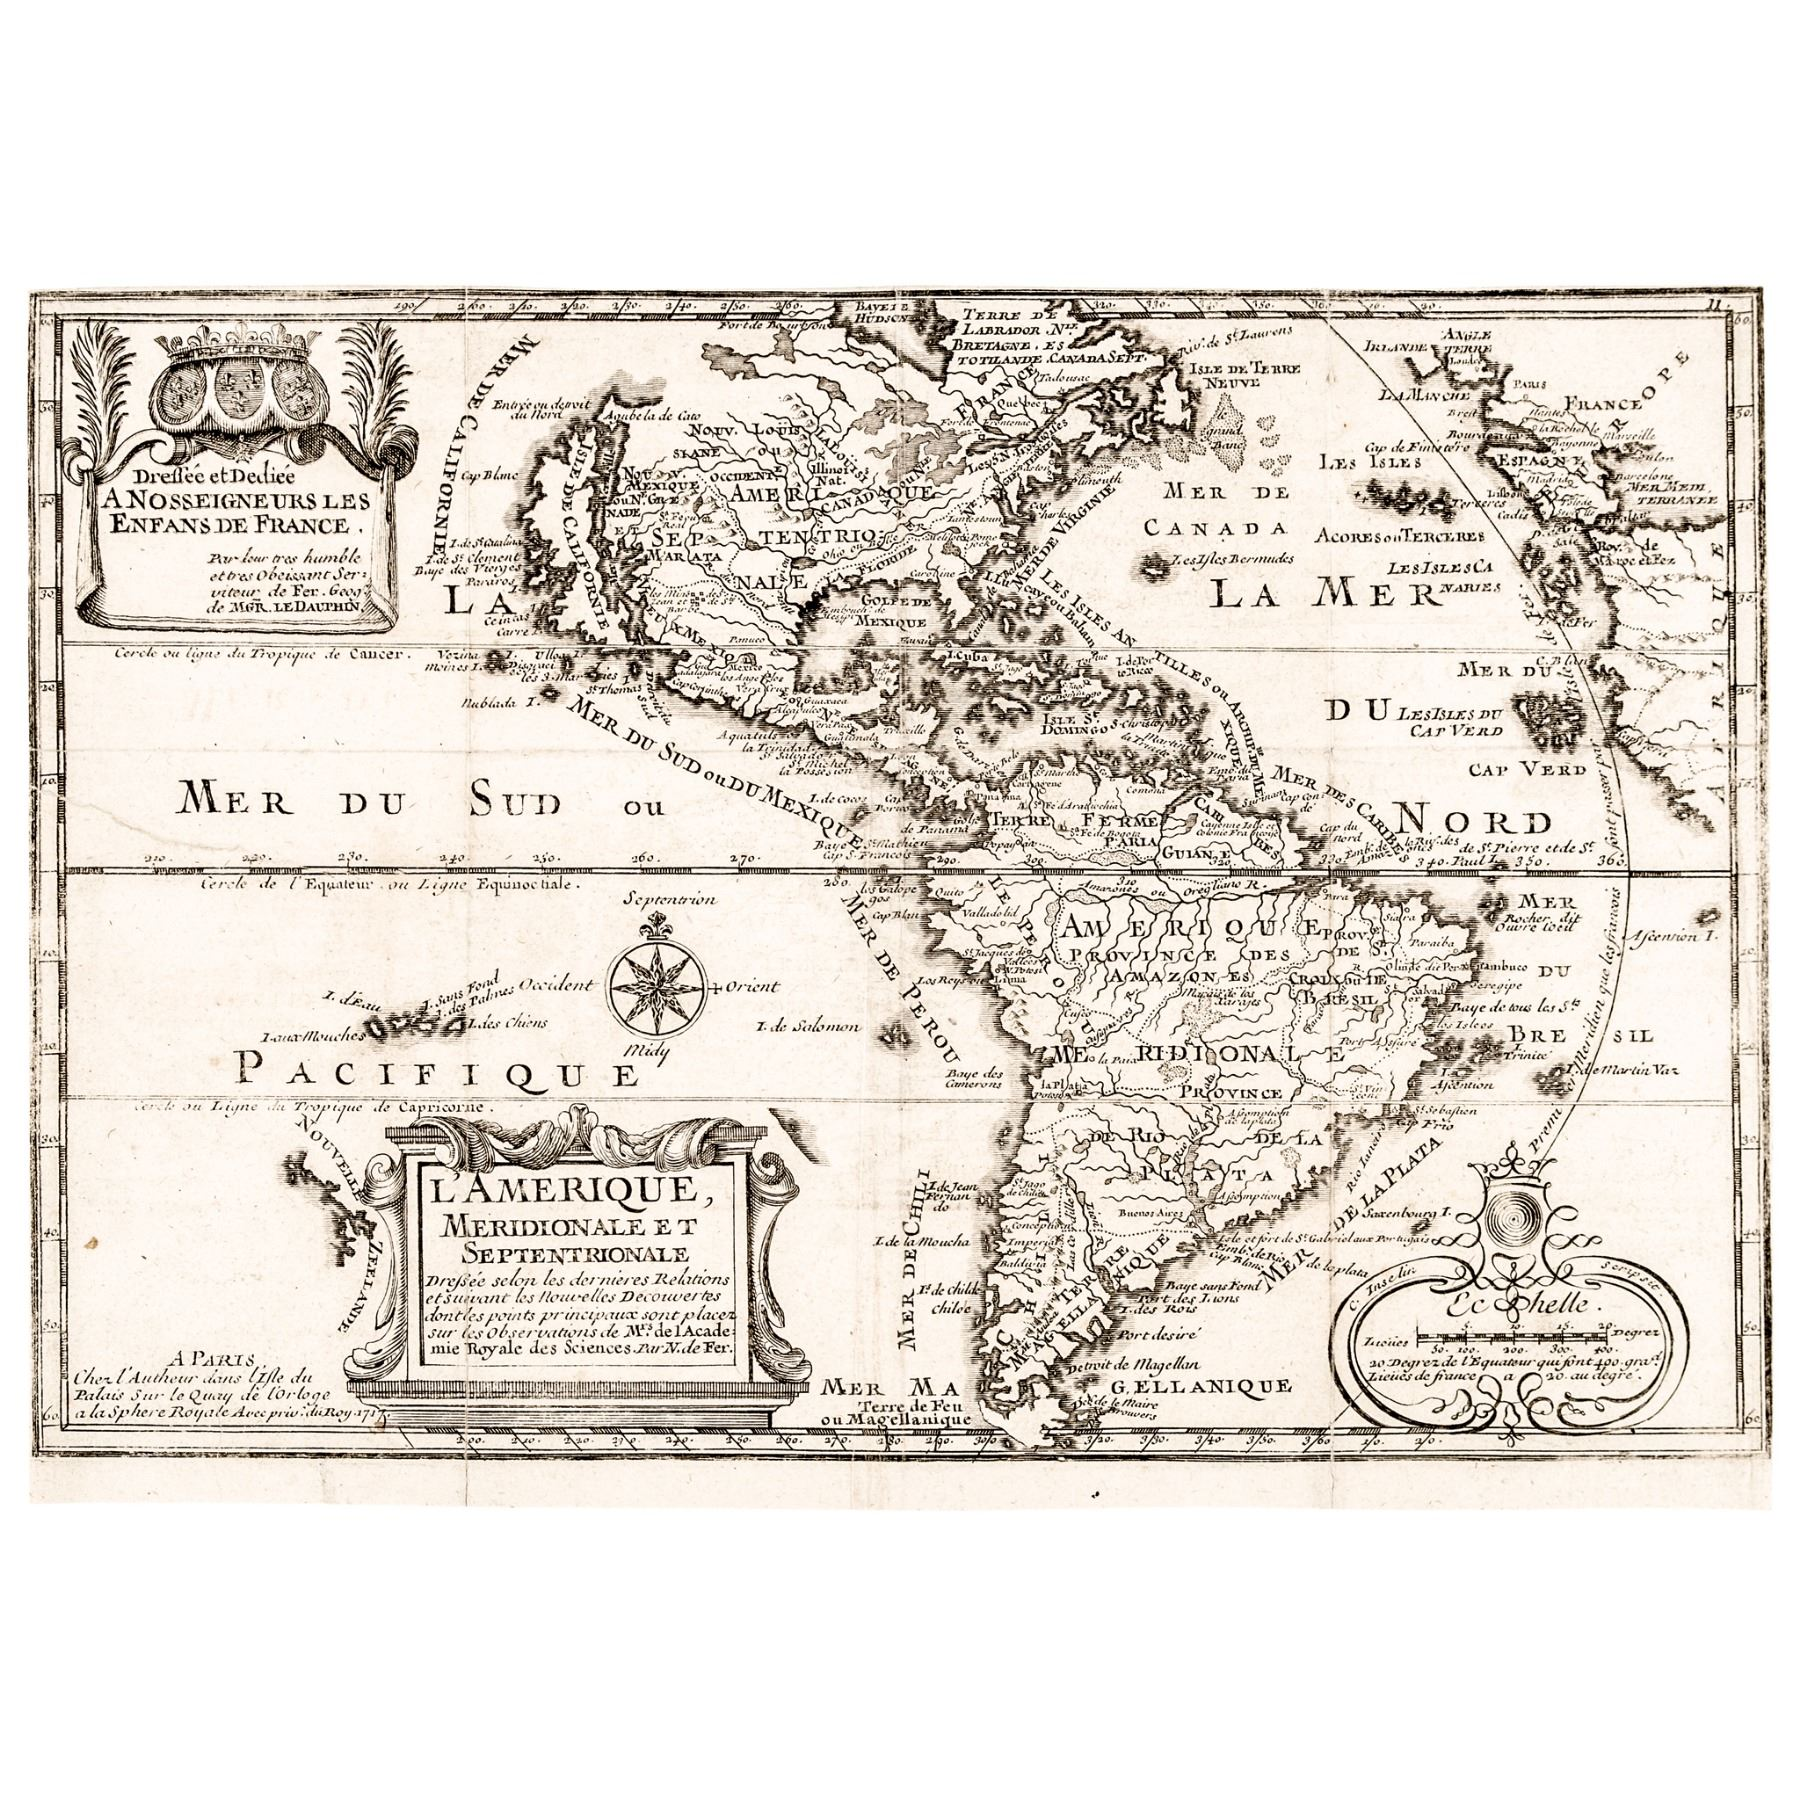 c. 1717 Map of North + South America Discovered + Sailed by Christopher Map Christopher Columbus on bartolomeu dias, columbus journey map, jacques marquette map, jacques cartier map, william shakespeare, james cook, francisco coronado map, world map, sir francis drake map, marco polo, columbus day, columbus 1492 voyage map, jacques cartier, samuel de champlain, henry hudson map, henry 8 map, john cabot map, ferdinand magellan, vasco da gama, columbian exchange, atlantic ocean map, john cabot, michael jackson map, galileo galilei, columbus trips map, spain map, james i of england map, henry hudson, francis drake, juan ponce de leon map, amerigo vespucci, hernando de soto, samuel de champlain map, ferdinand magellan map, william smith's map, marco polo map,